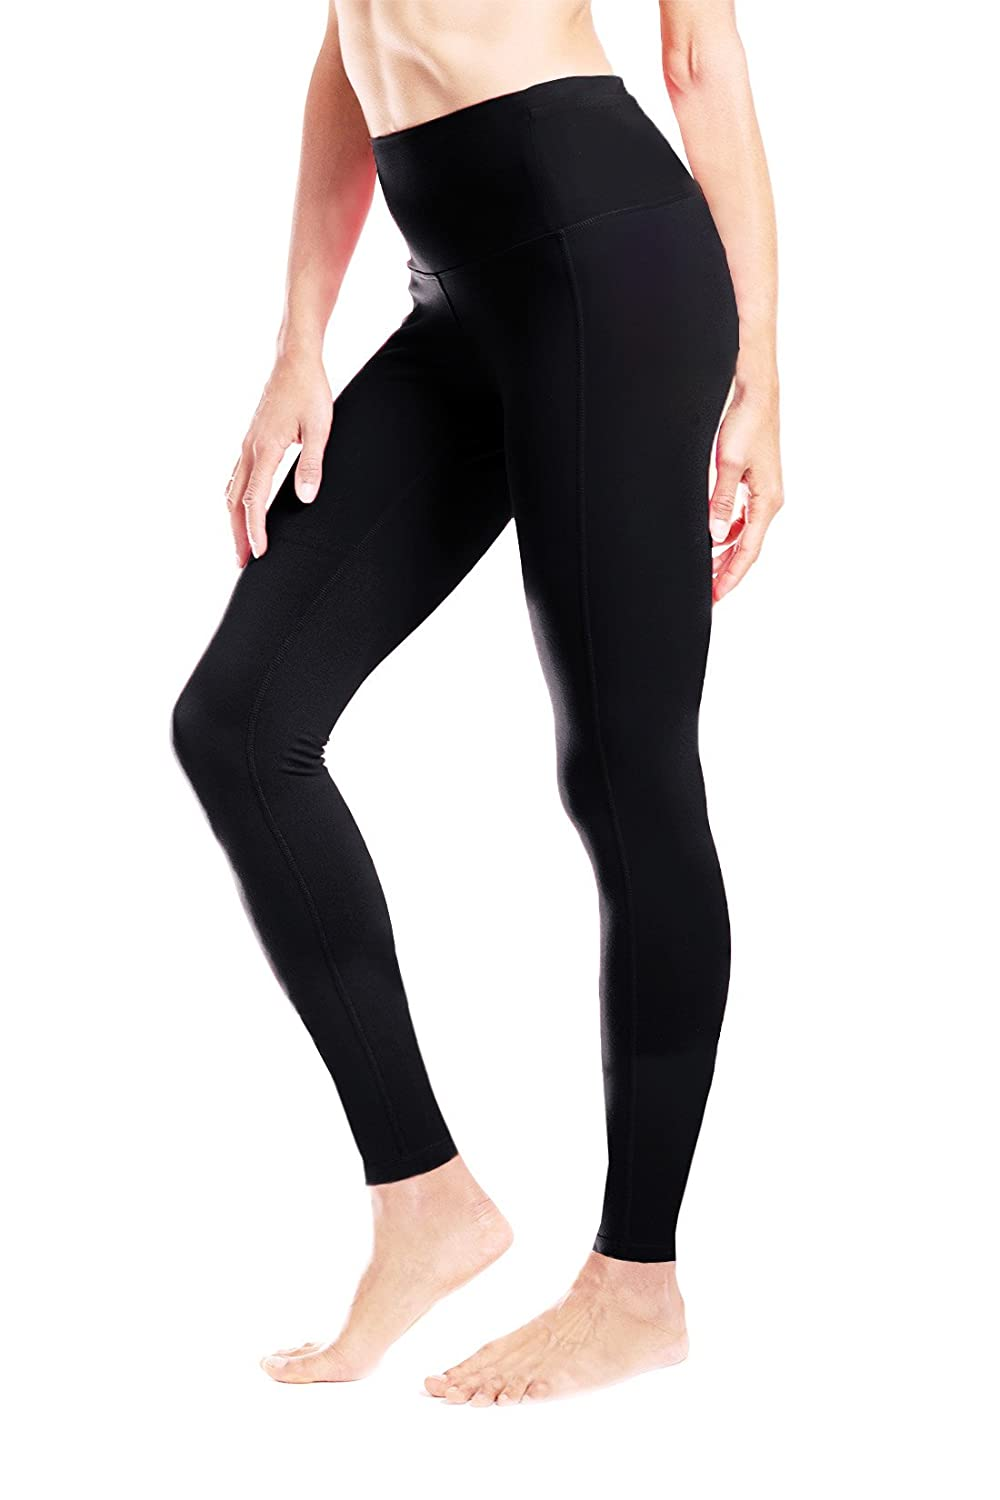 Beautiful Zella Live In Legging Small Black Pants Ankle Length Yoga Activewear Bottoms